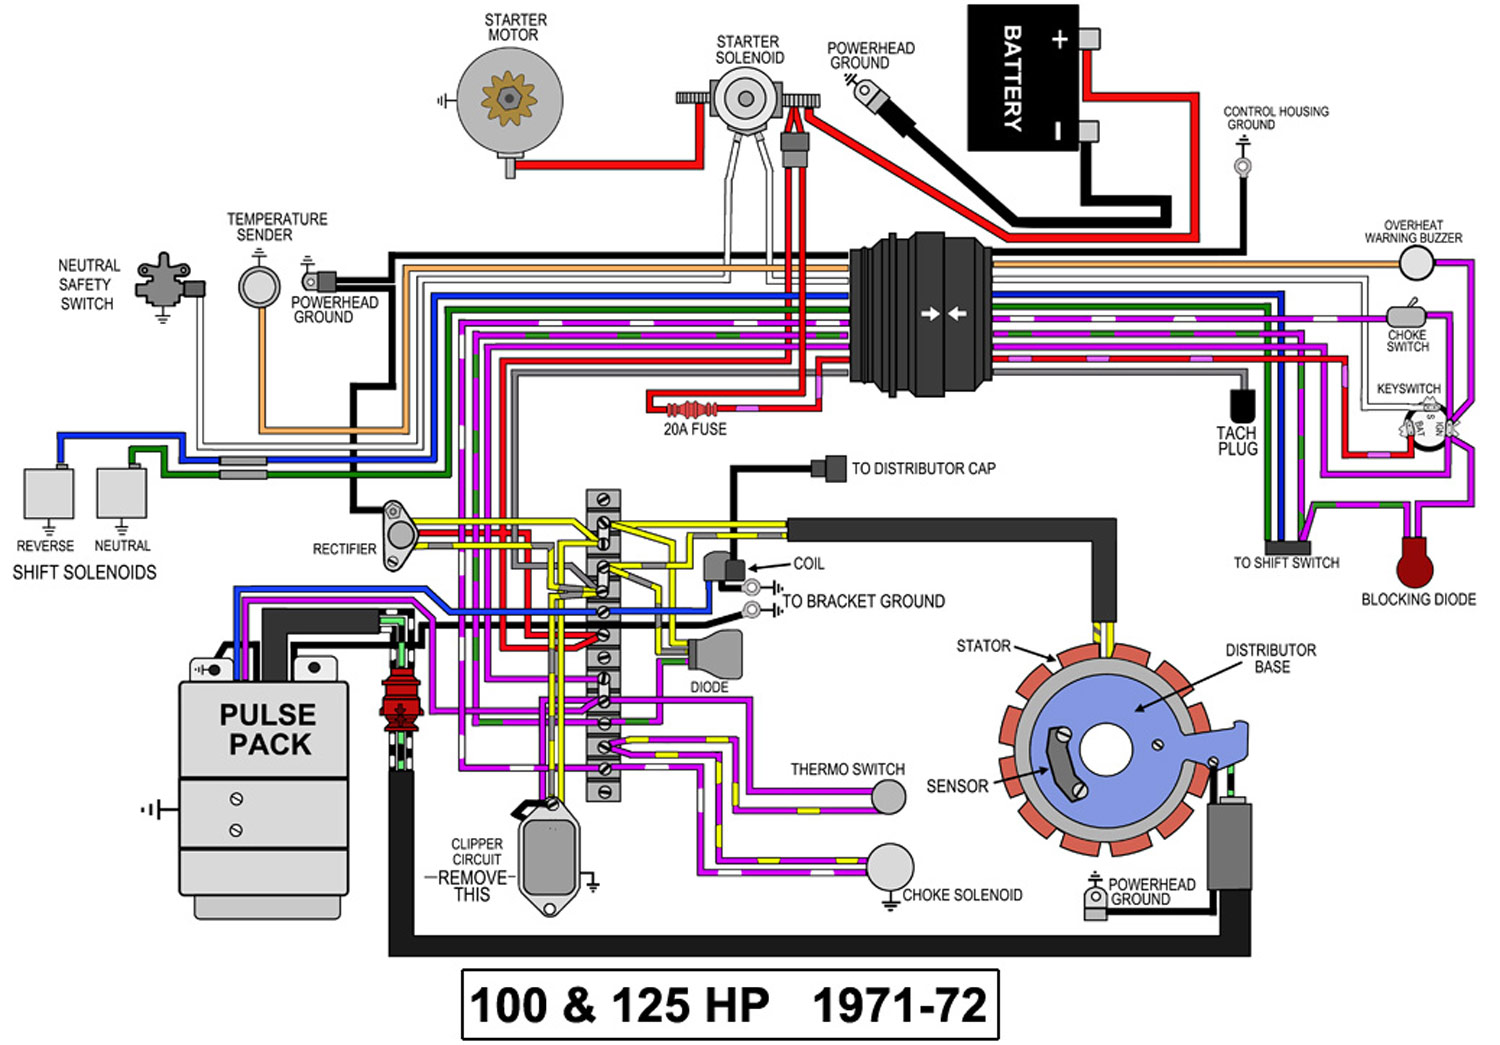 evinrude johnson outboard wiring diagrams -- mastertech ... 60hp evinrude ignition switch wiring diagram #2